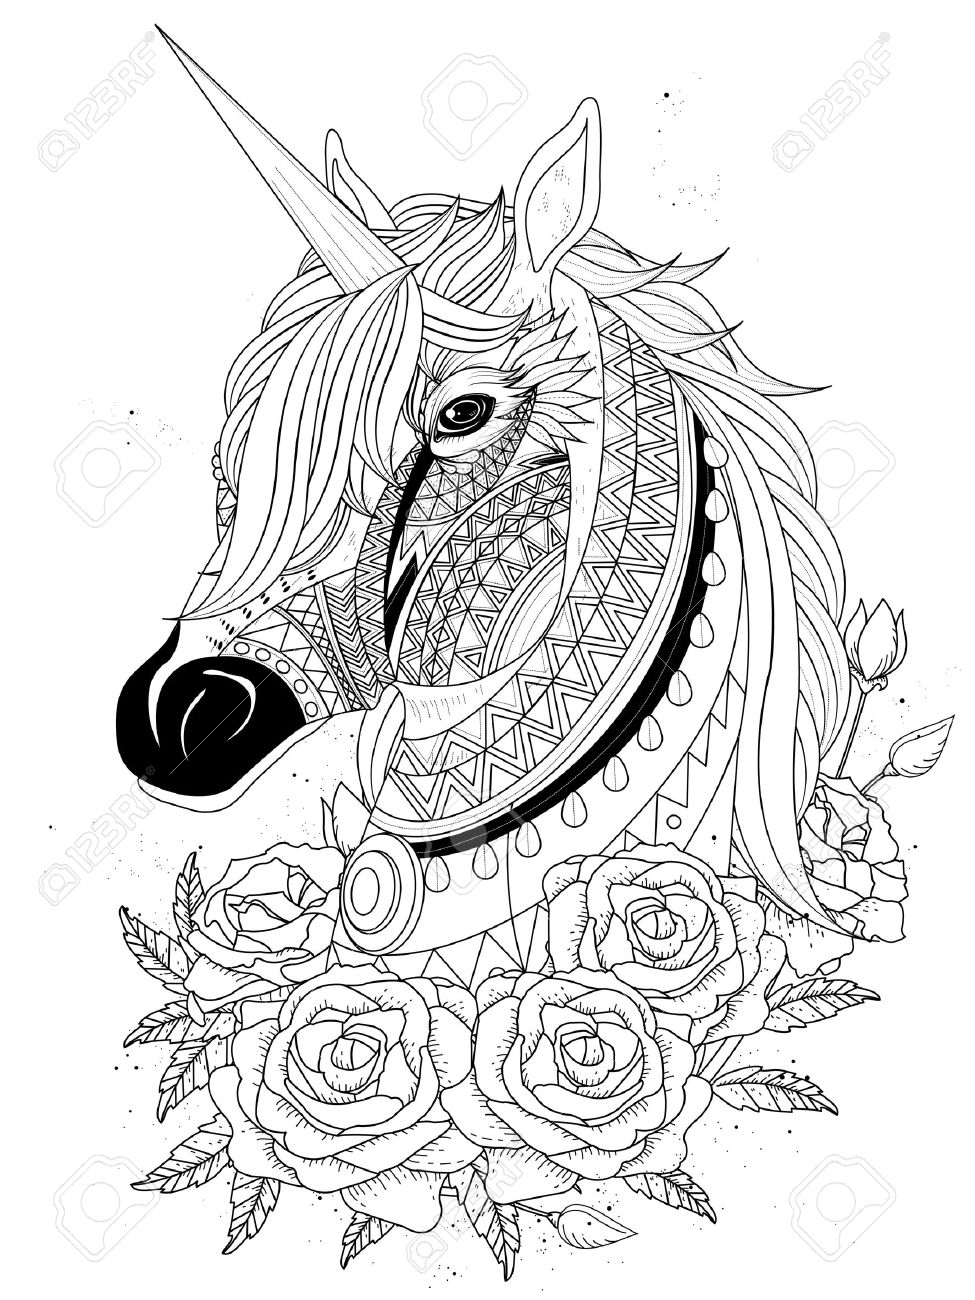 Coloring pages for adults unicorns - Coloring Pages For Adults Unicorns Free Coloring Pages For Unicorns Vector Sacred Unicorn With Roses